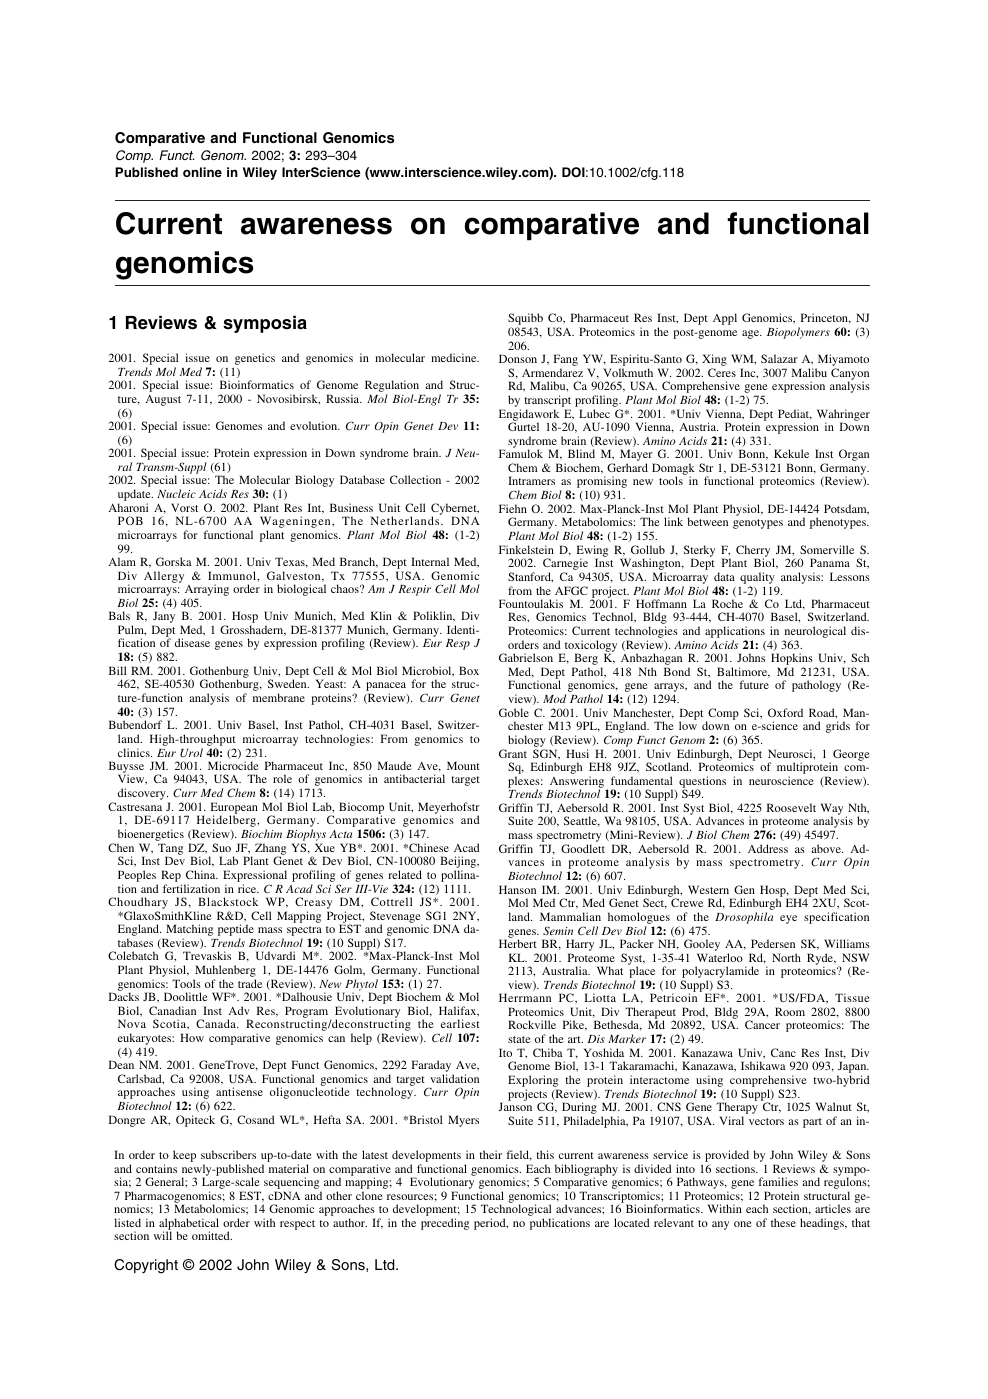 24 Rue Daniel Stern 75015 current awareness on comparative and functional genomics